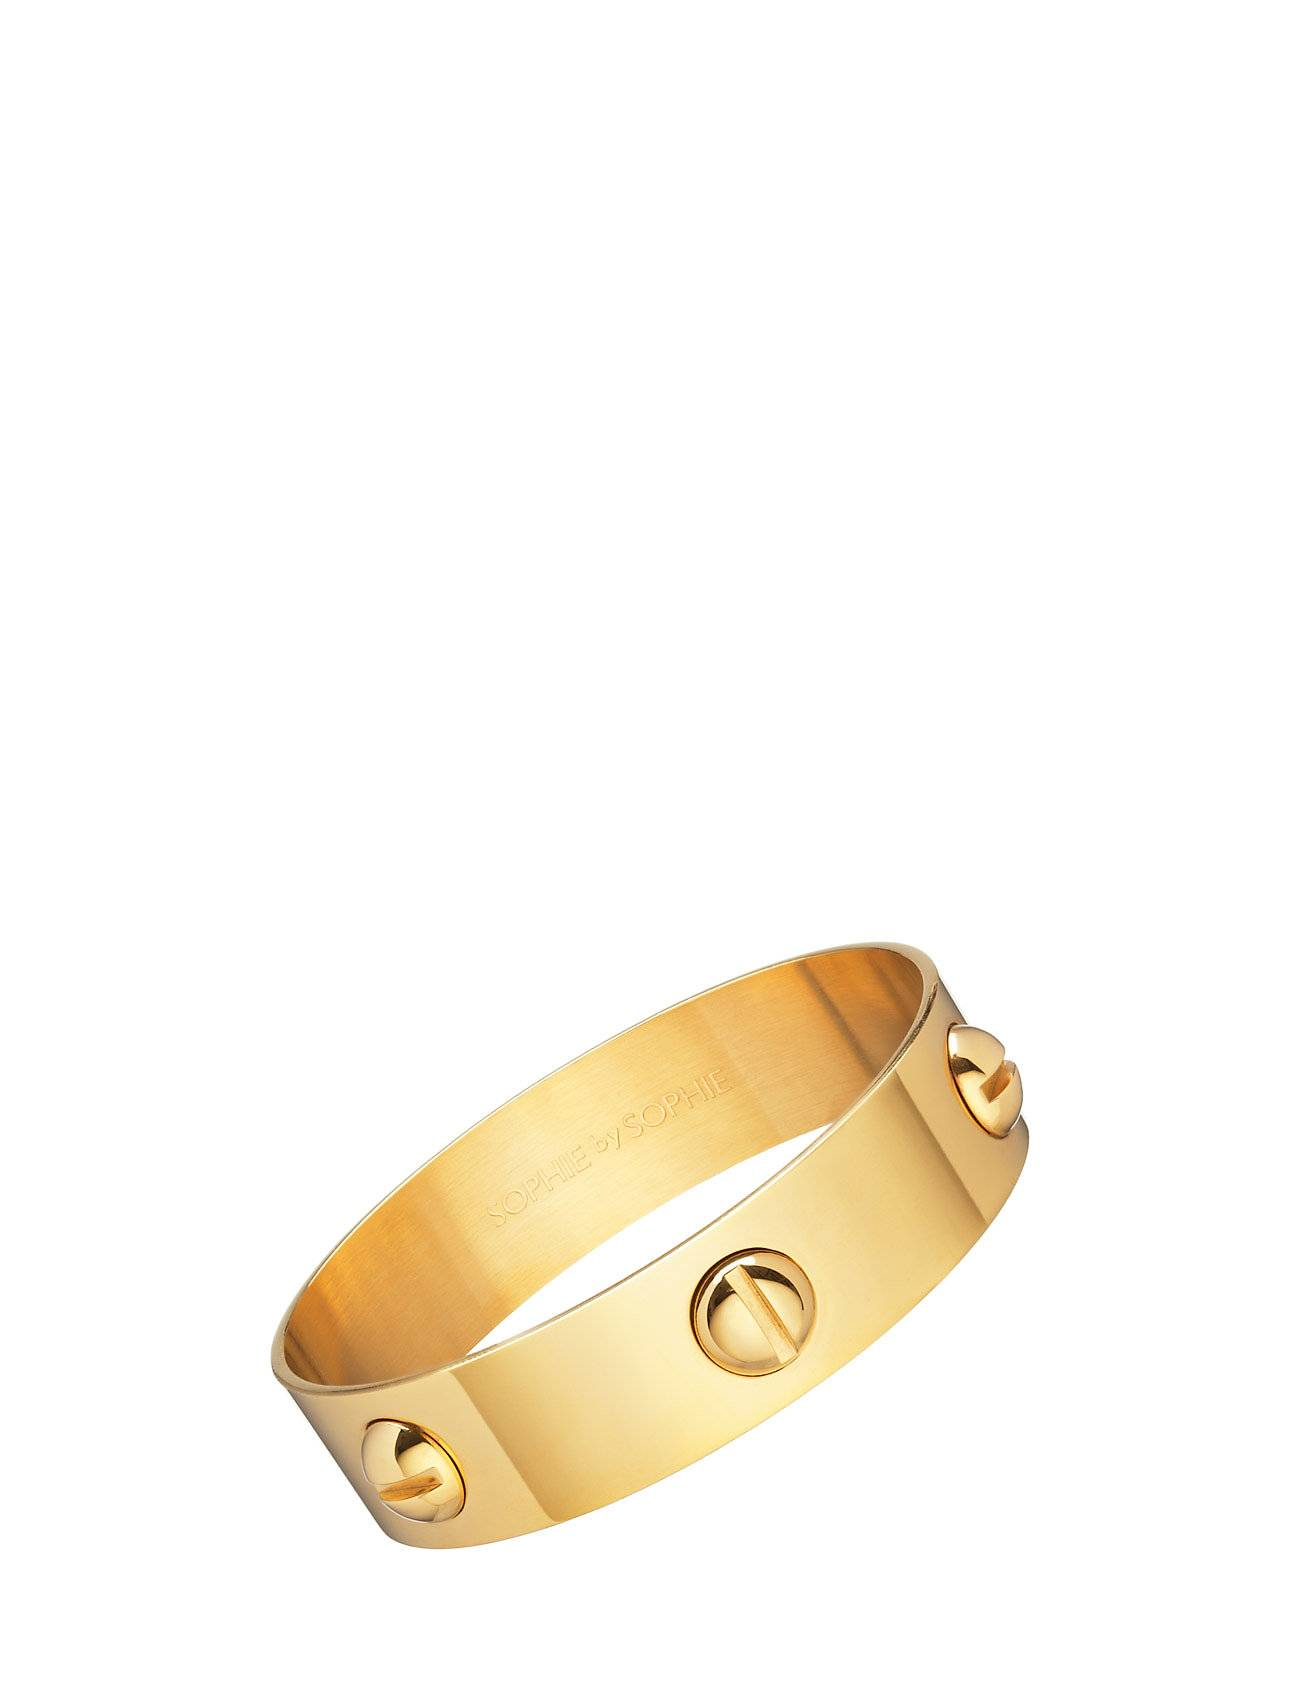 SOPHIE by SOPHIE Screw Bangle